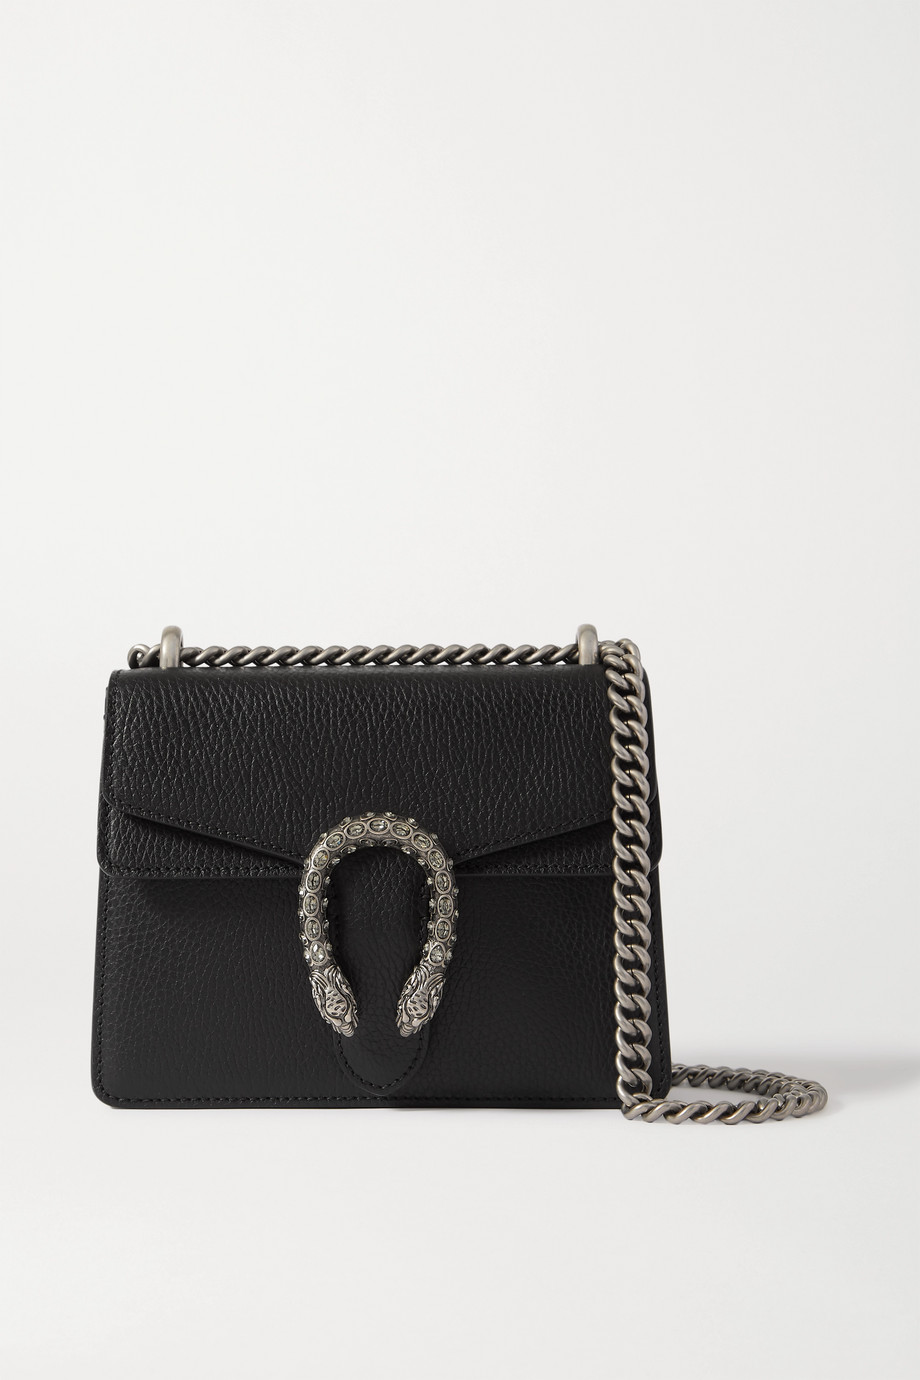 Gucci + NET SUSTAIN Dionysus mini textured-leather shoulder bag